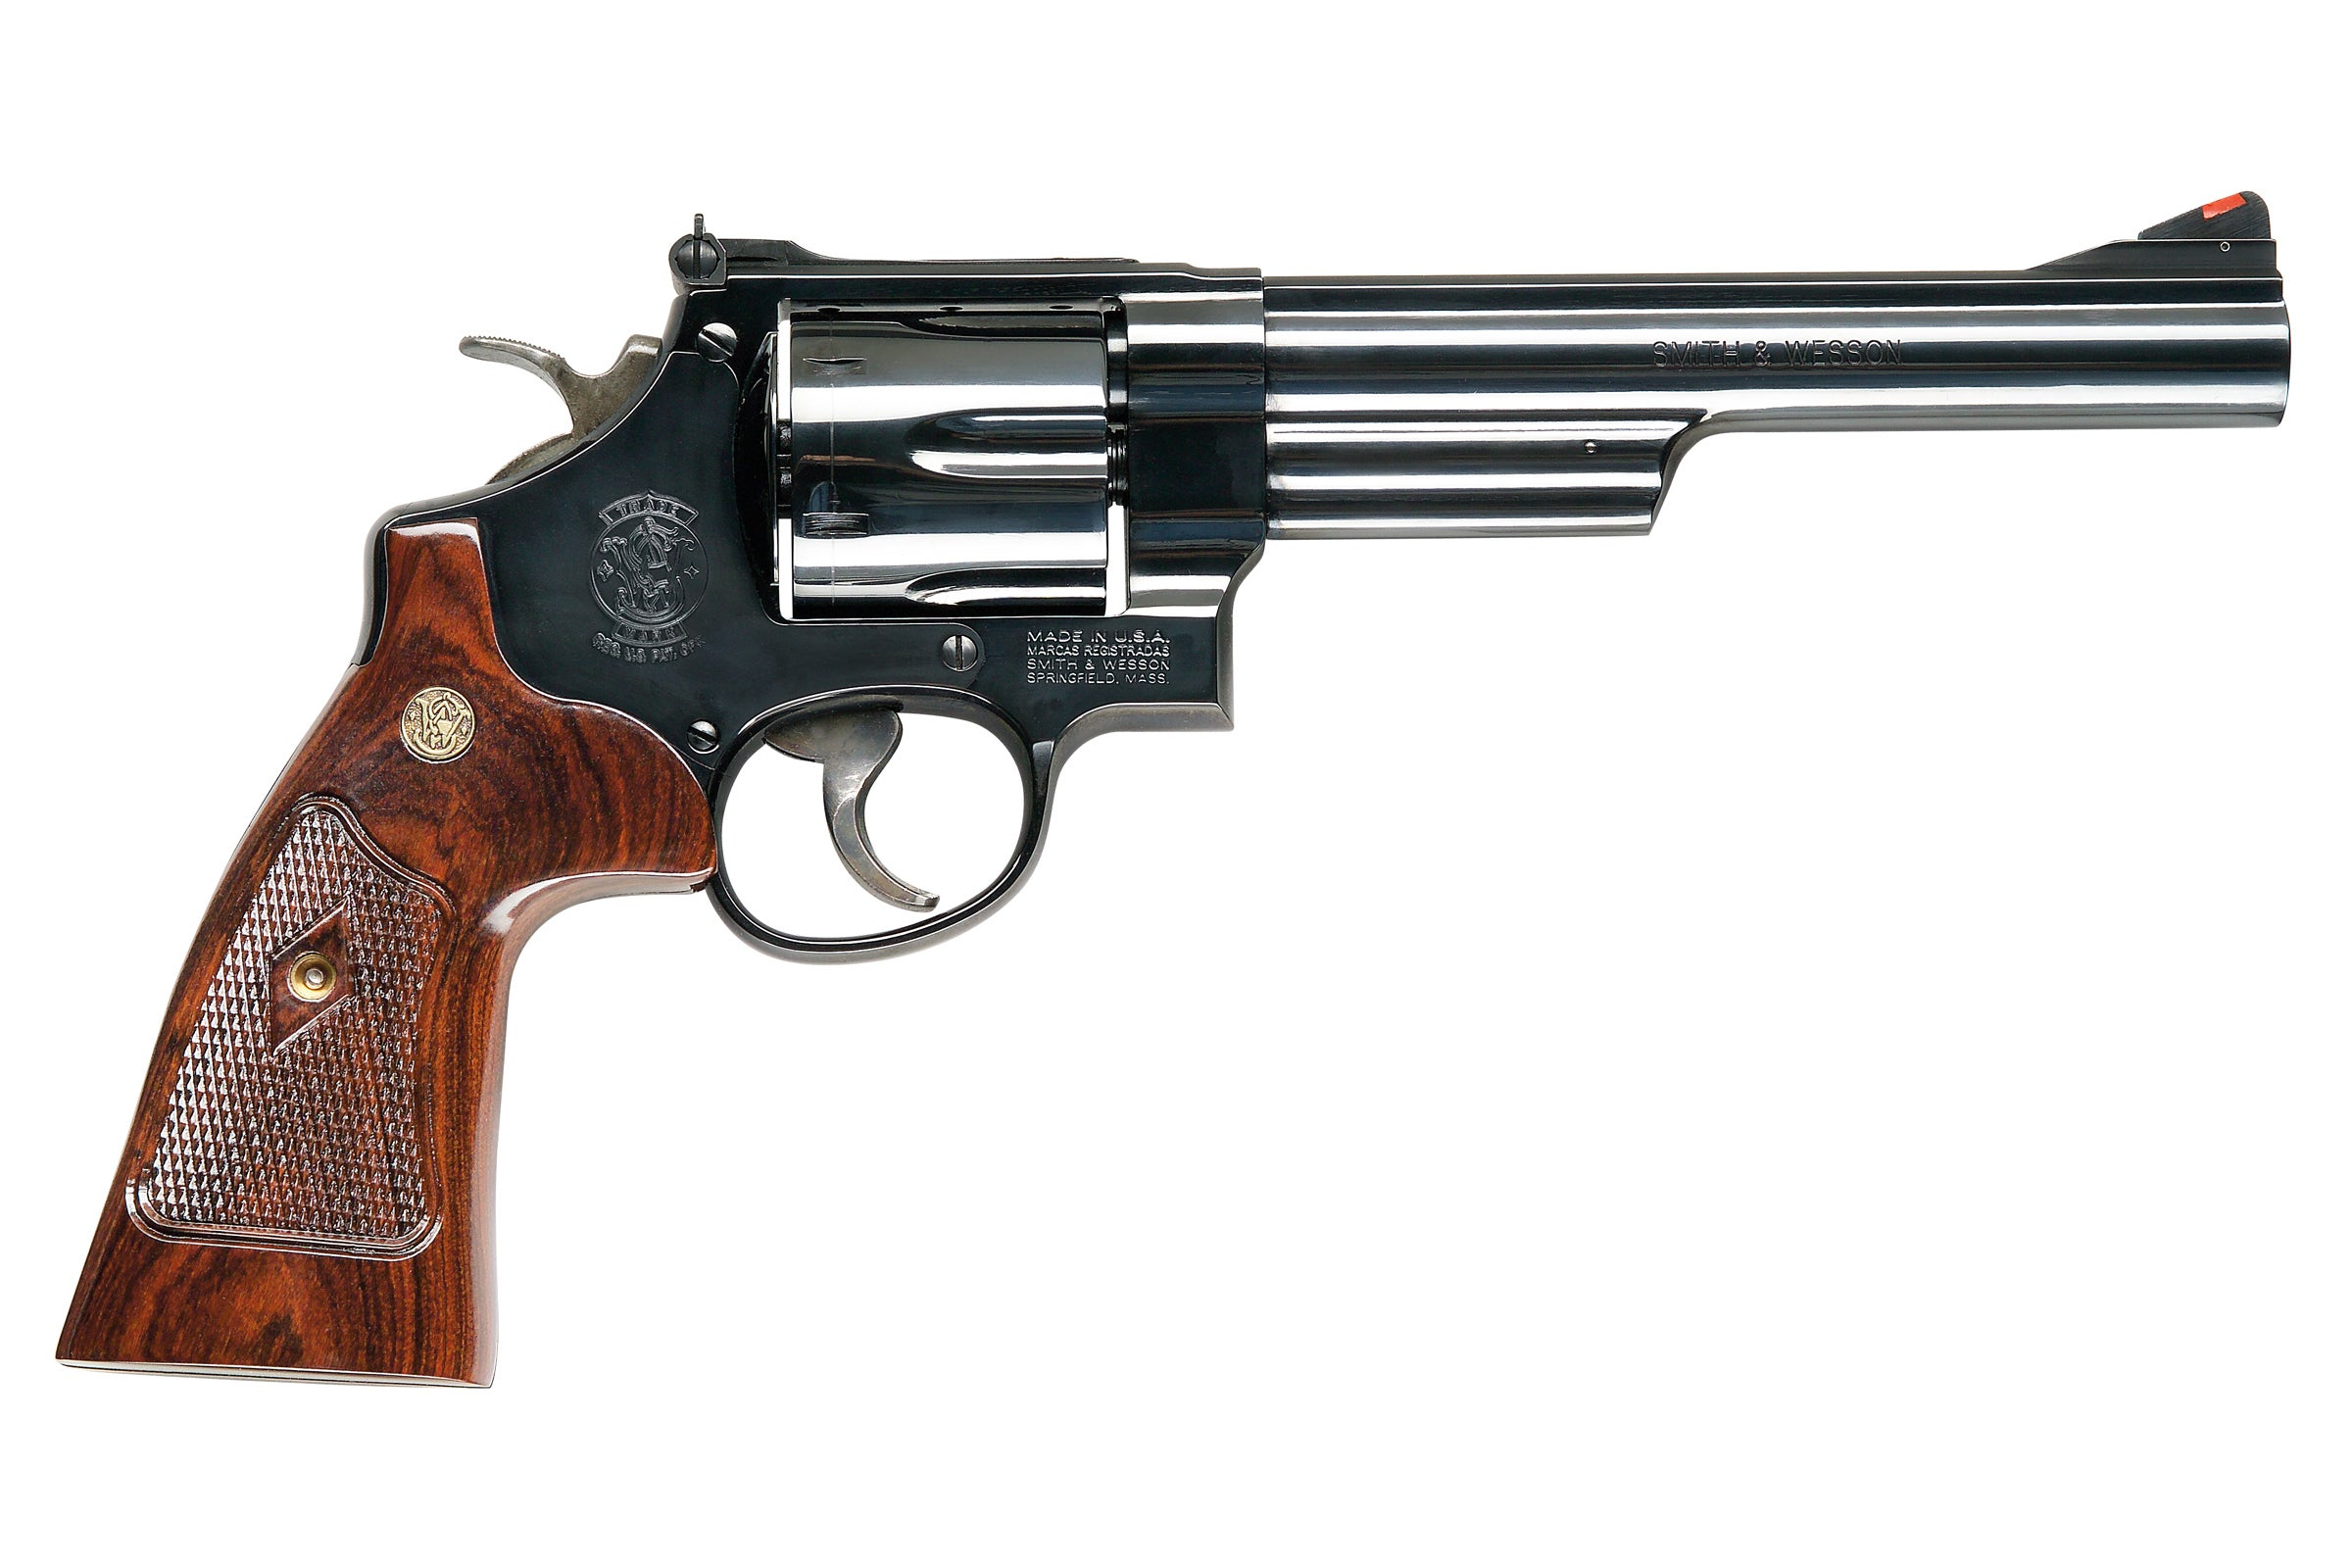 The Smith & Wesson Model 29.